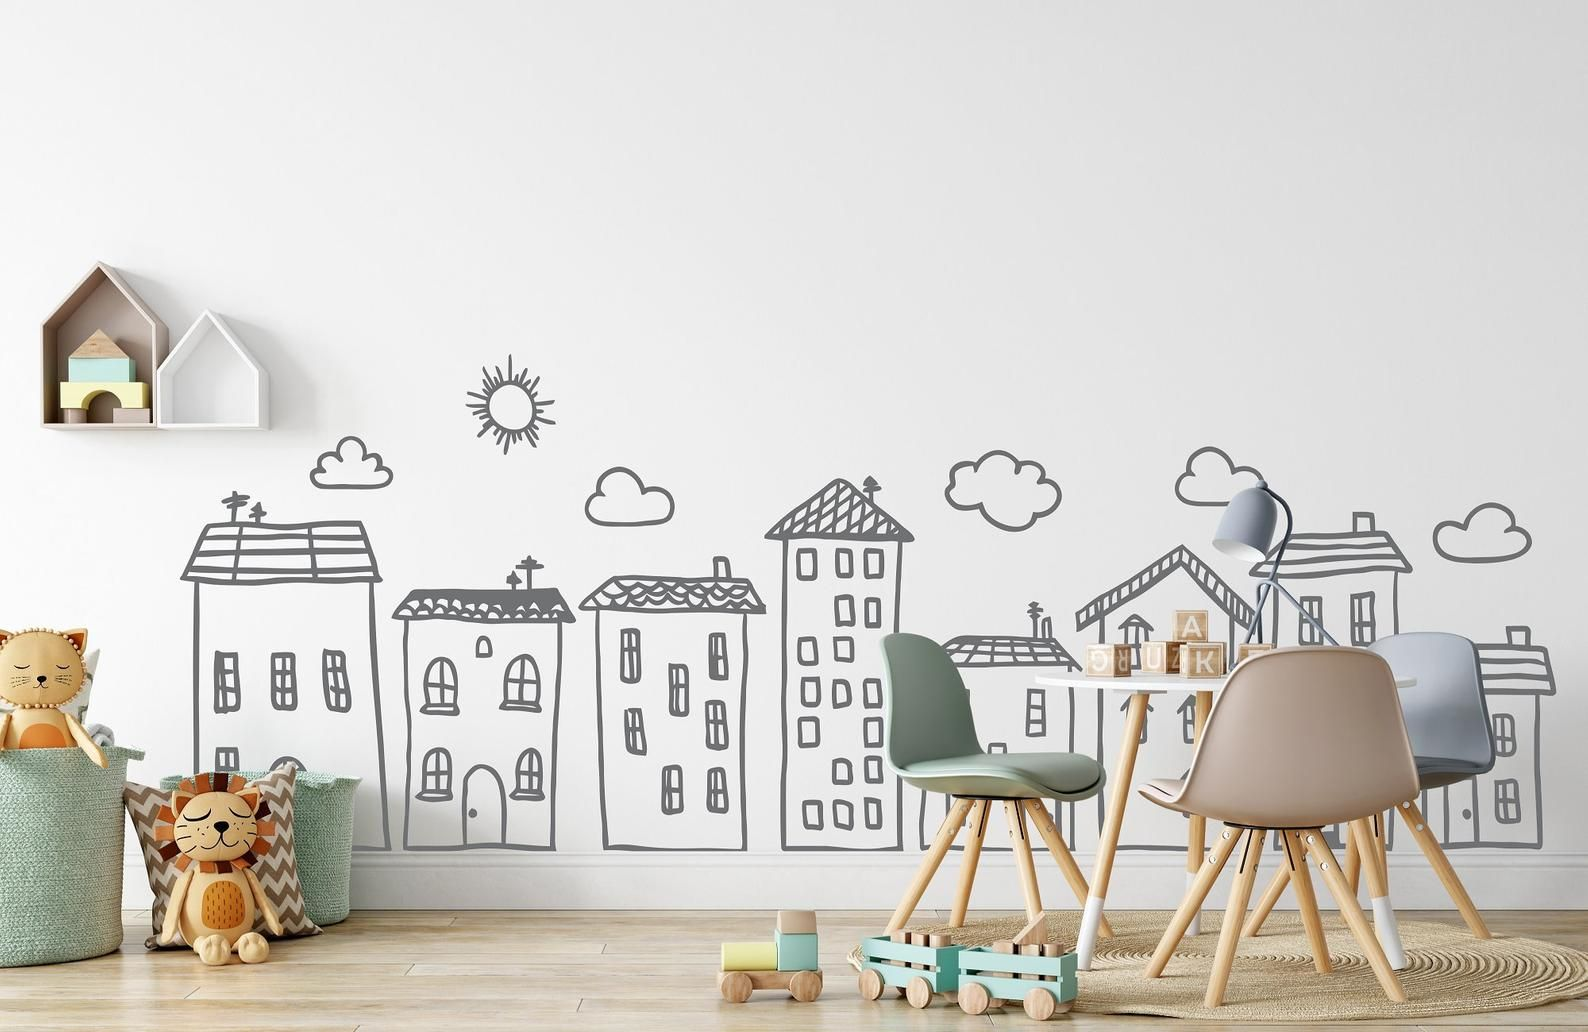 Doodle City Wall Art Decals For Kids Room Playroom Preschool Nursery Decor Handpainted House Wall Stickers Modern Nursery Decal Neutral Baby Nursery Wall Art Decal Wall Art City Wall Art Wall decals for kids bedroom